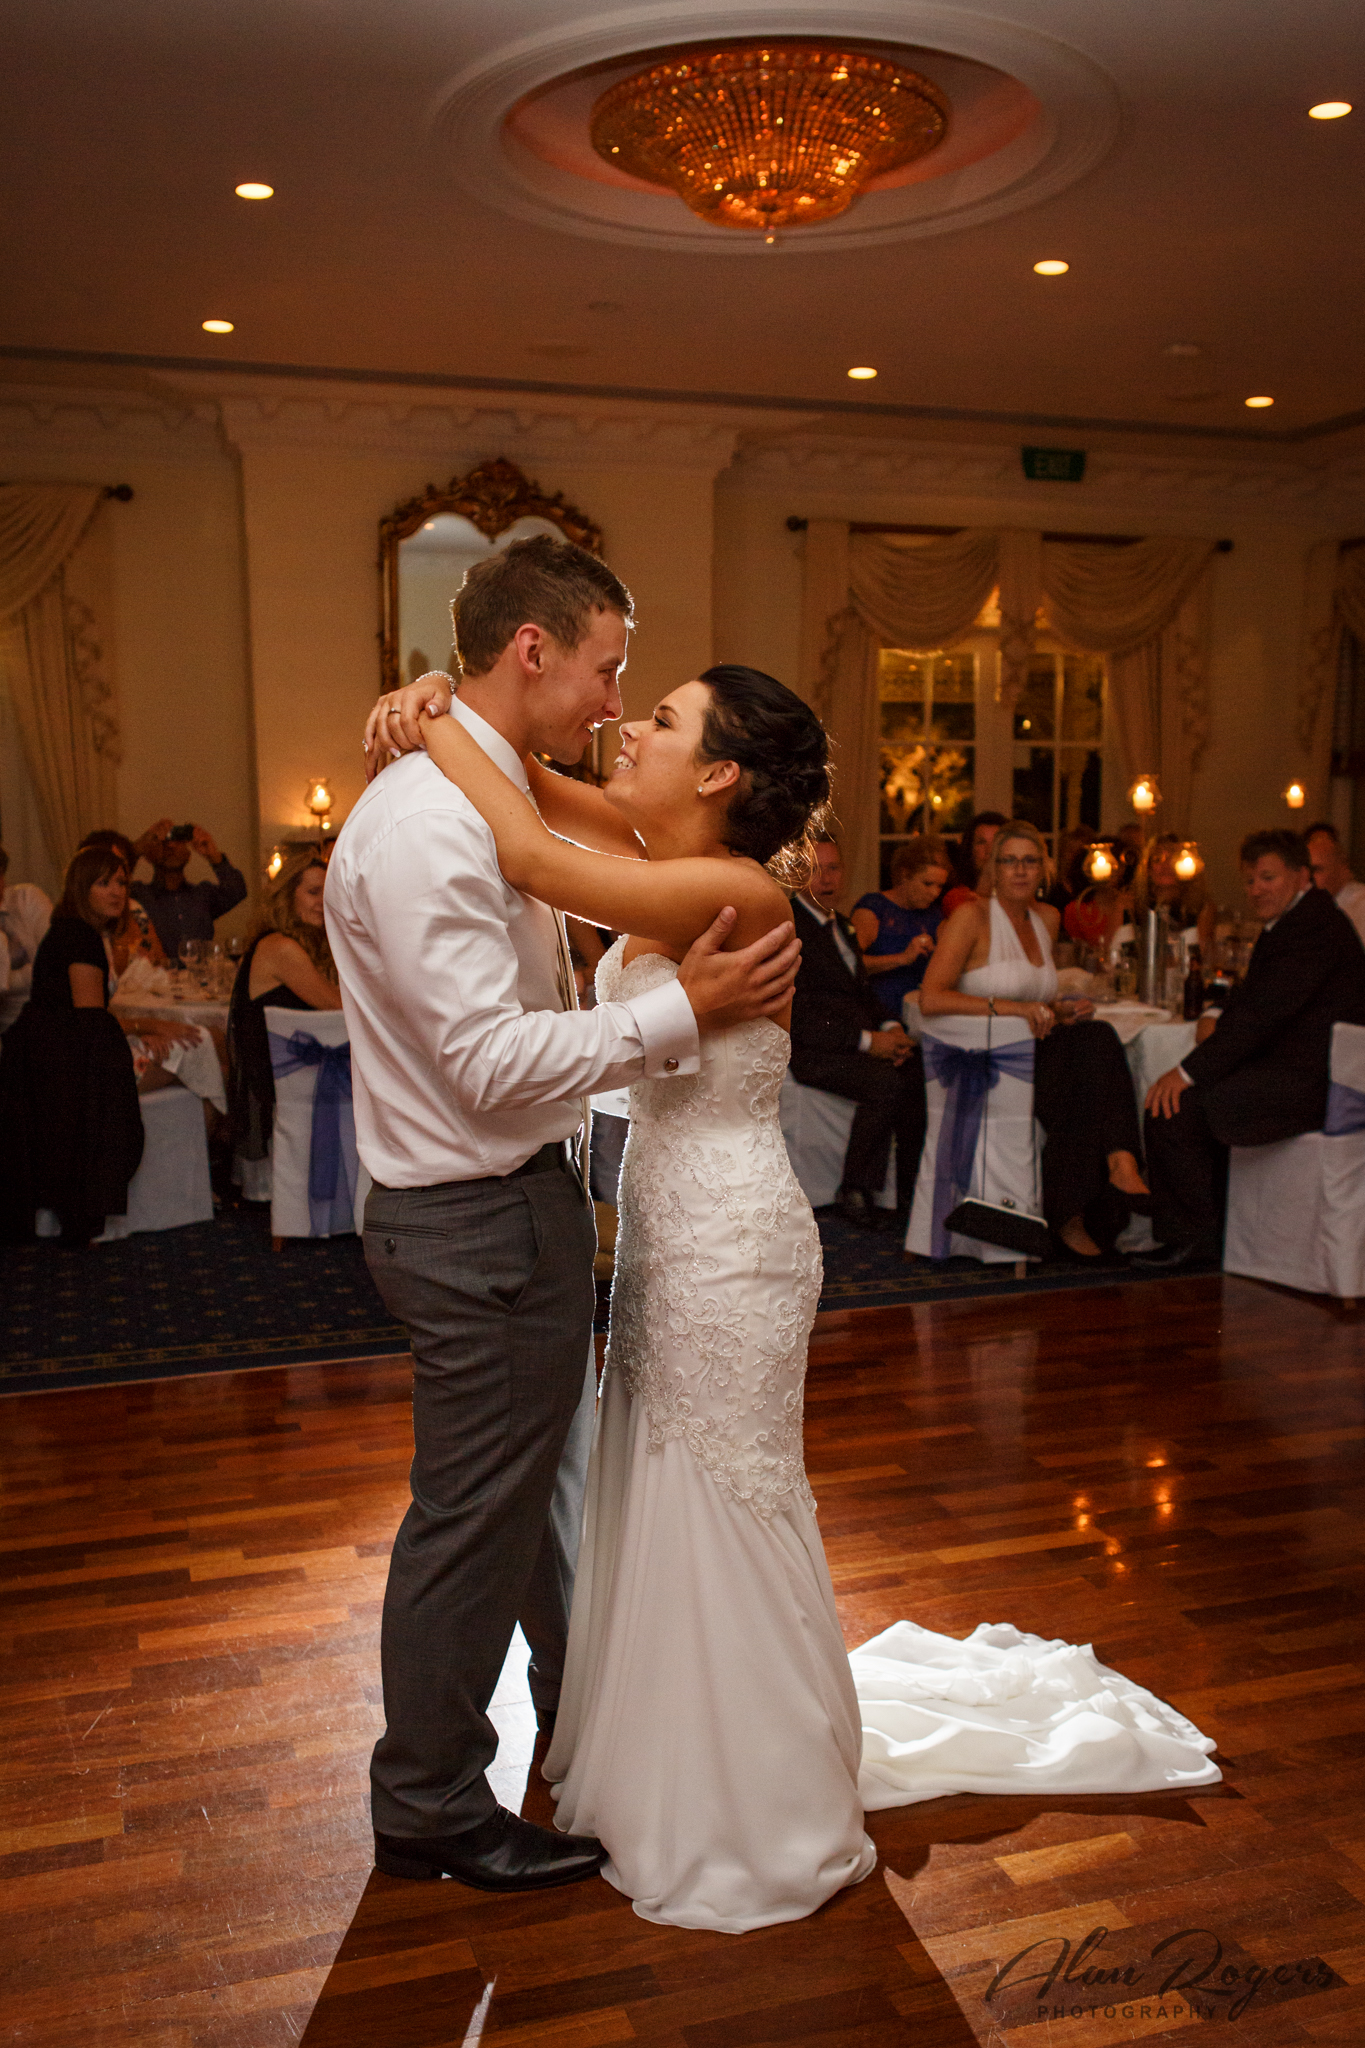 first-dance-bride-groom-dancefloor.jpg